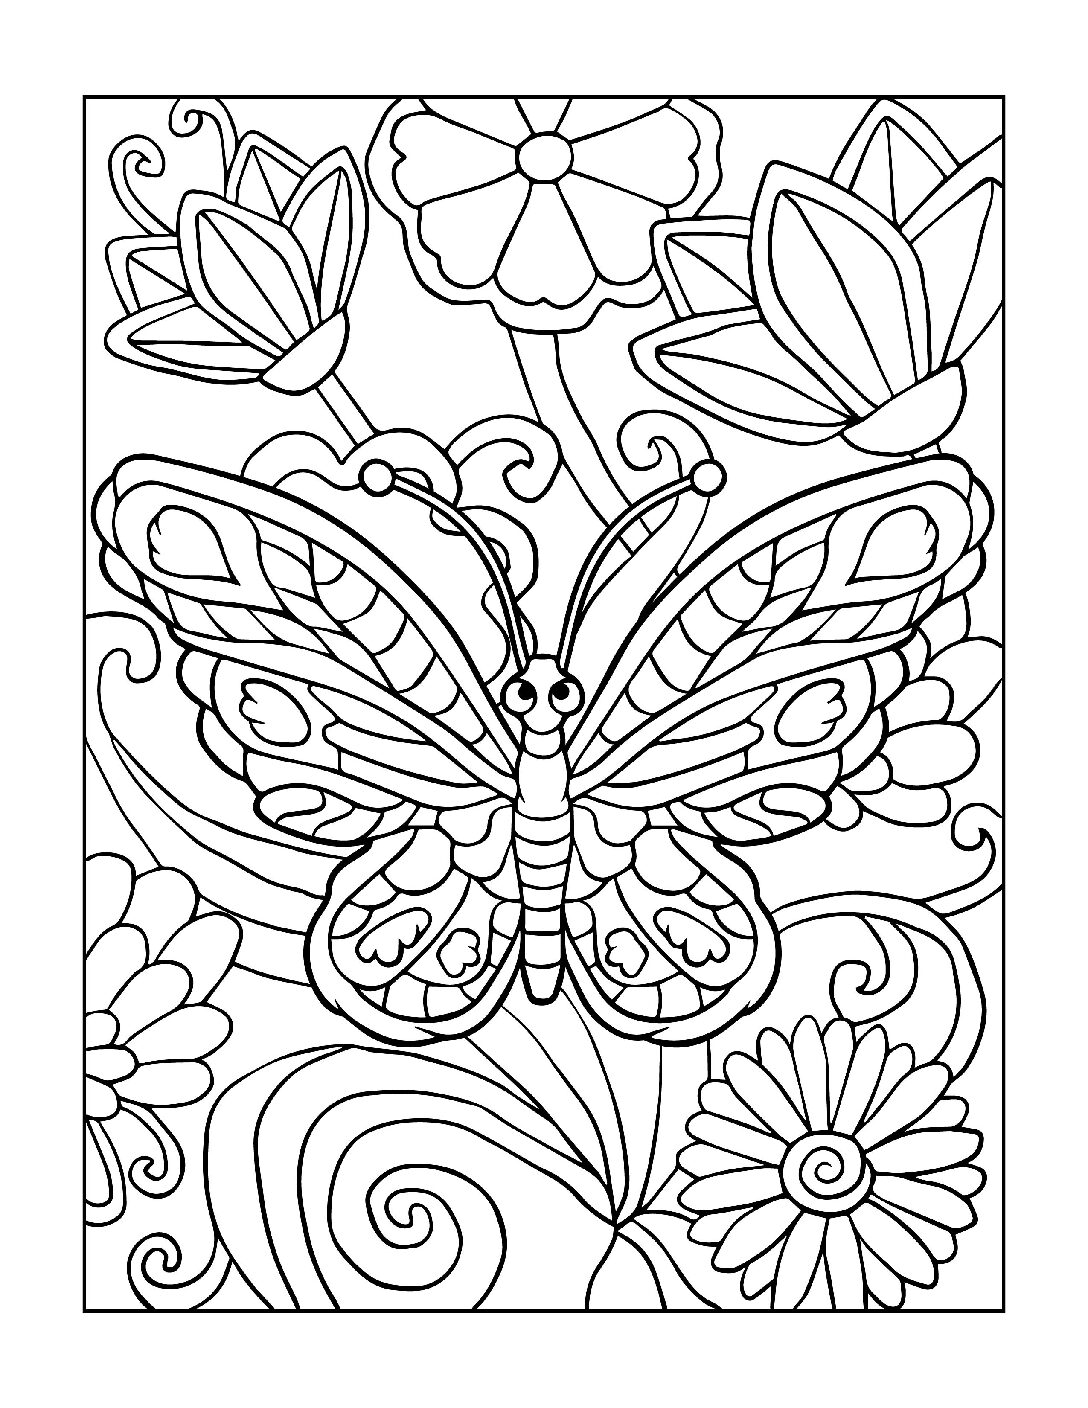 Coloring-Pages_Butterflies-5-01-1-pdf Free Printable Butterfly Colouring Pages